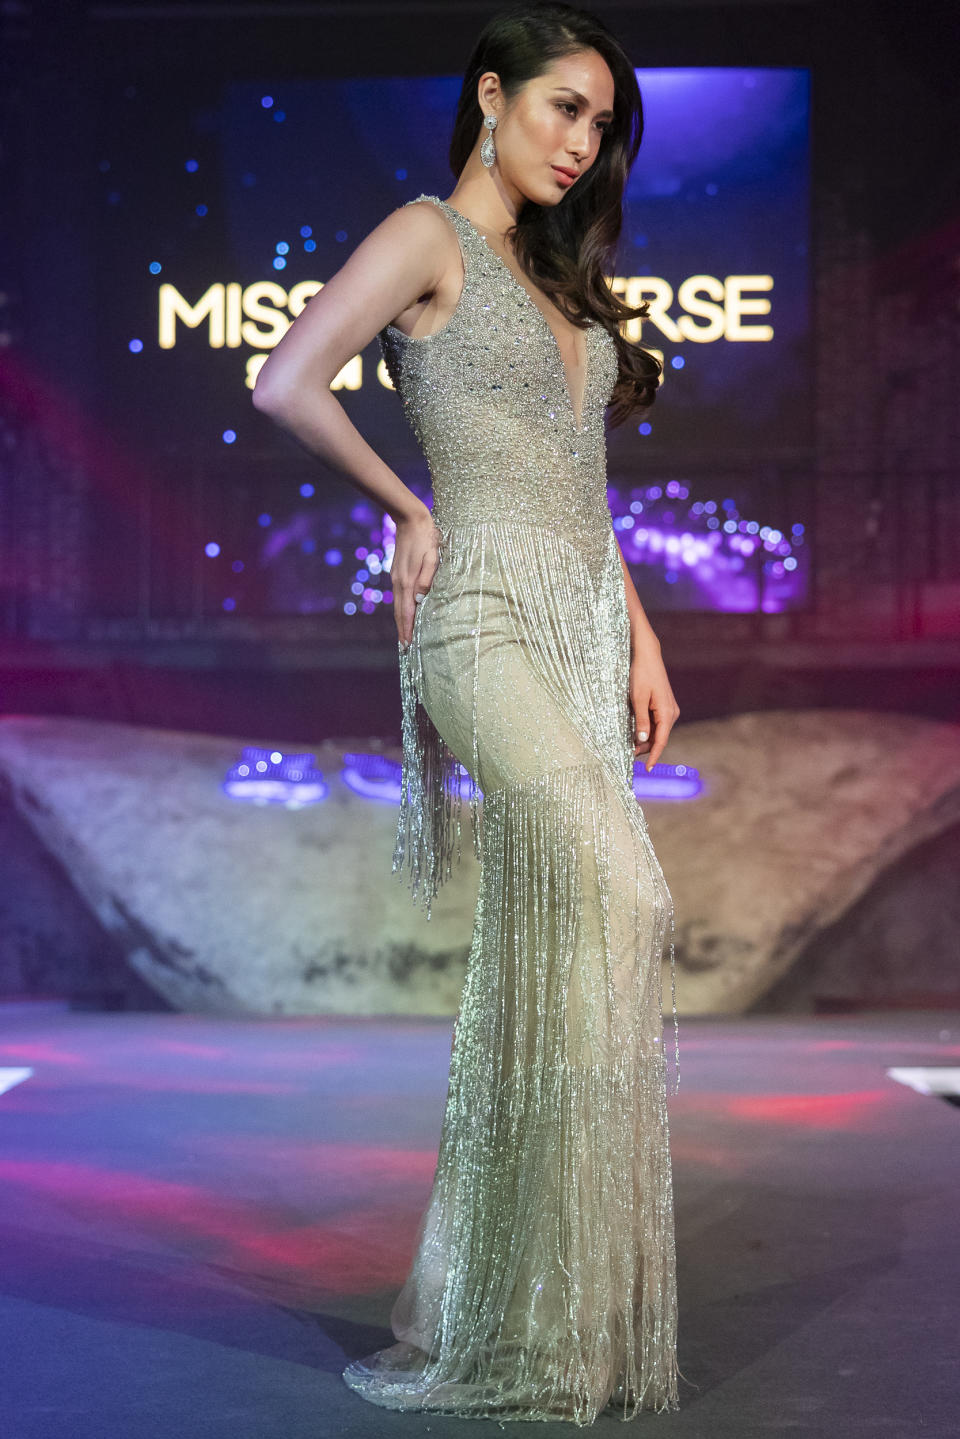 Bernadette Wu-Ong competing in the evening gown segment during the 2019 Miss Universe Singapore at Zouk.